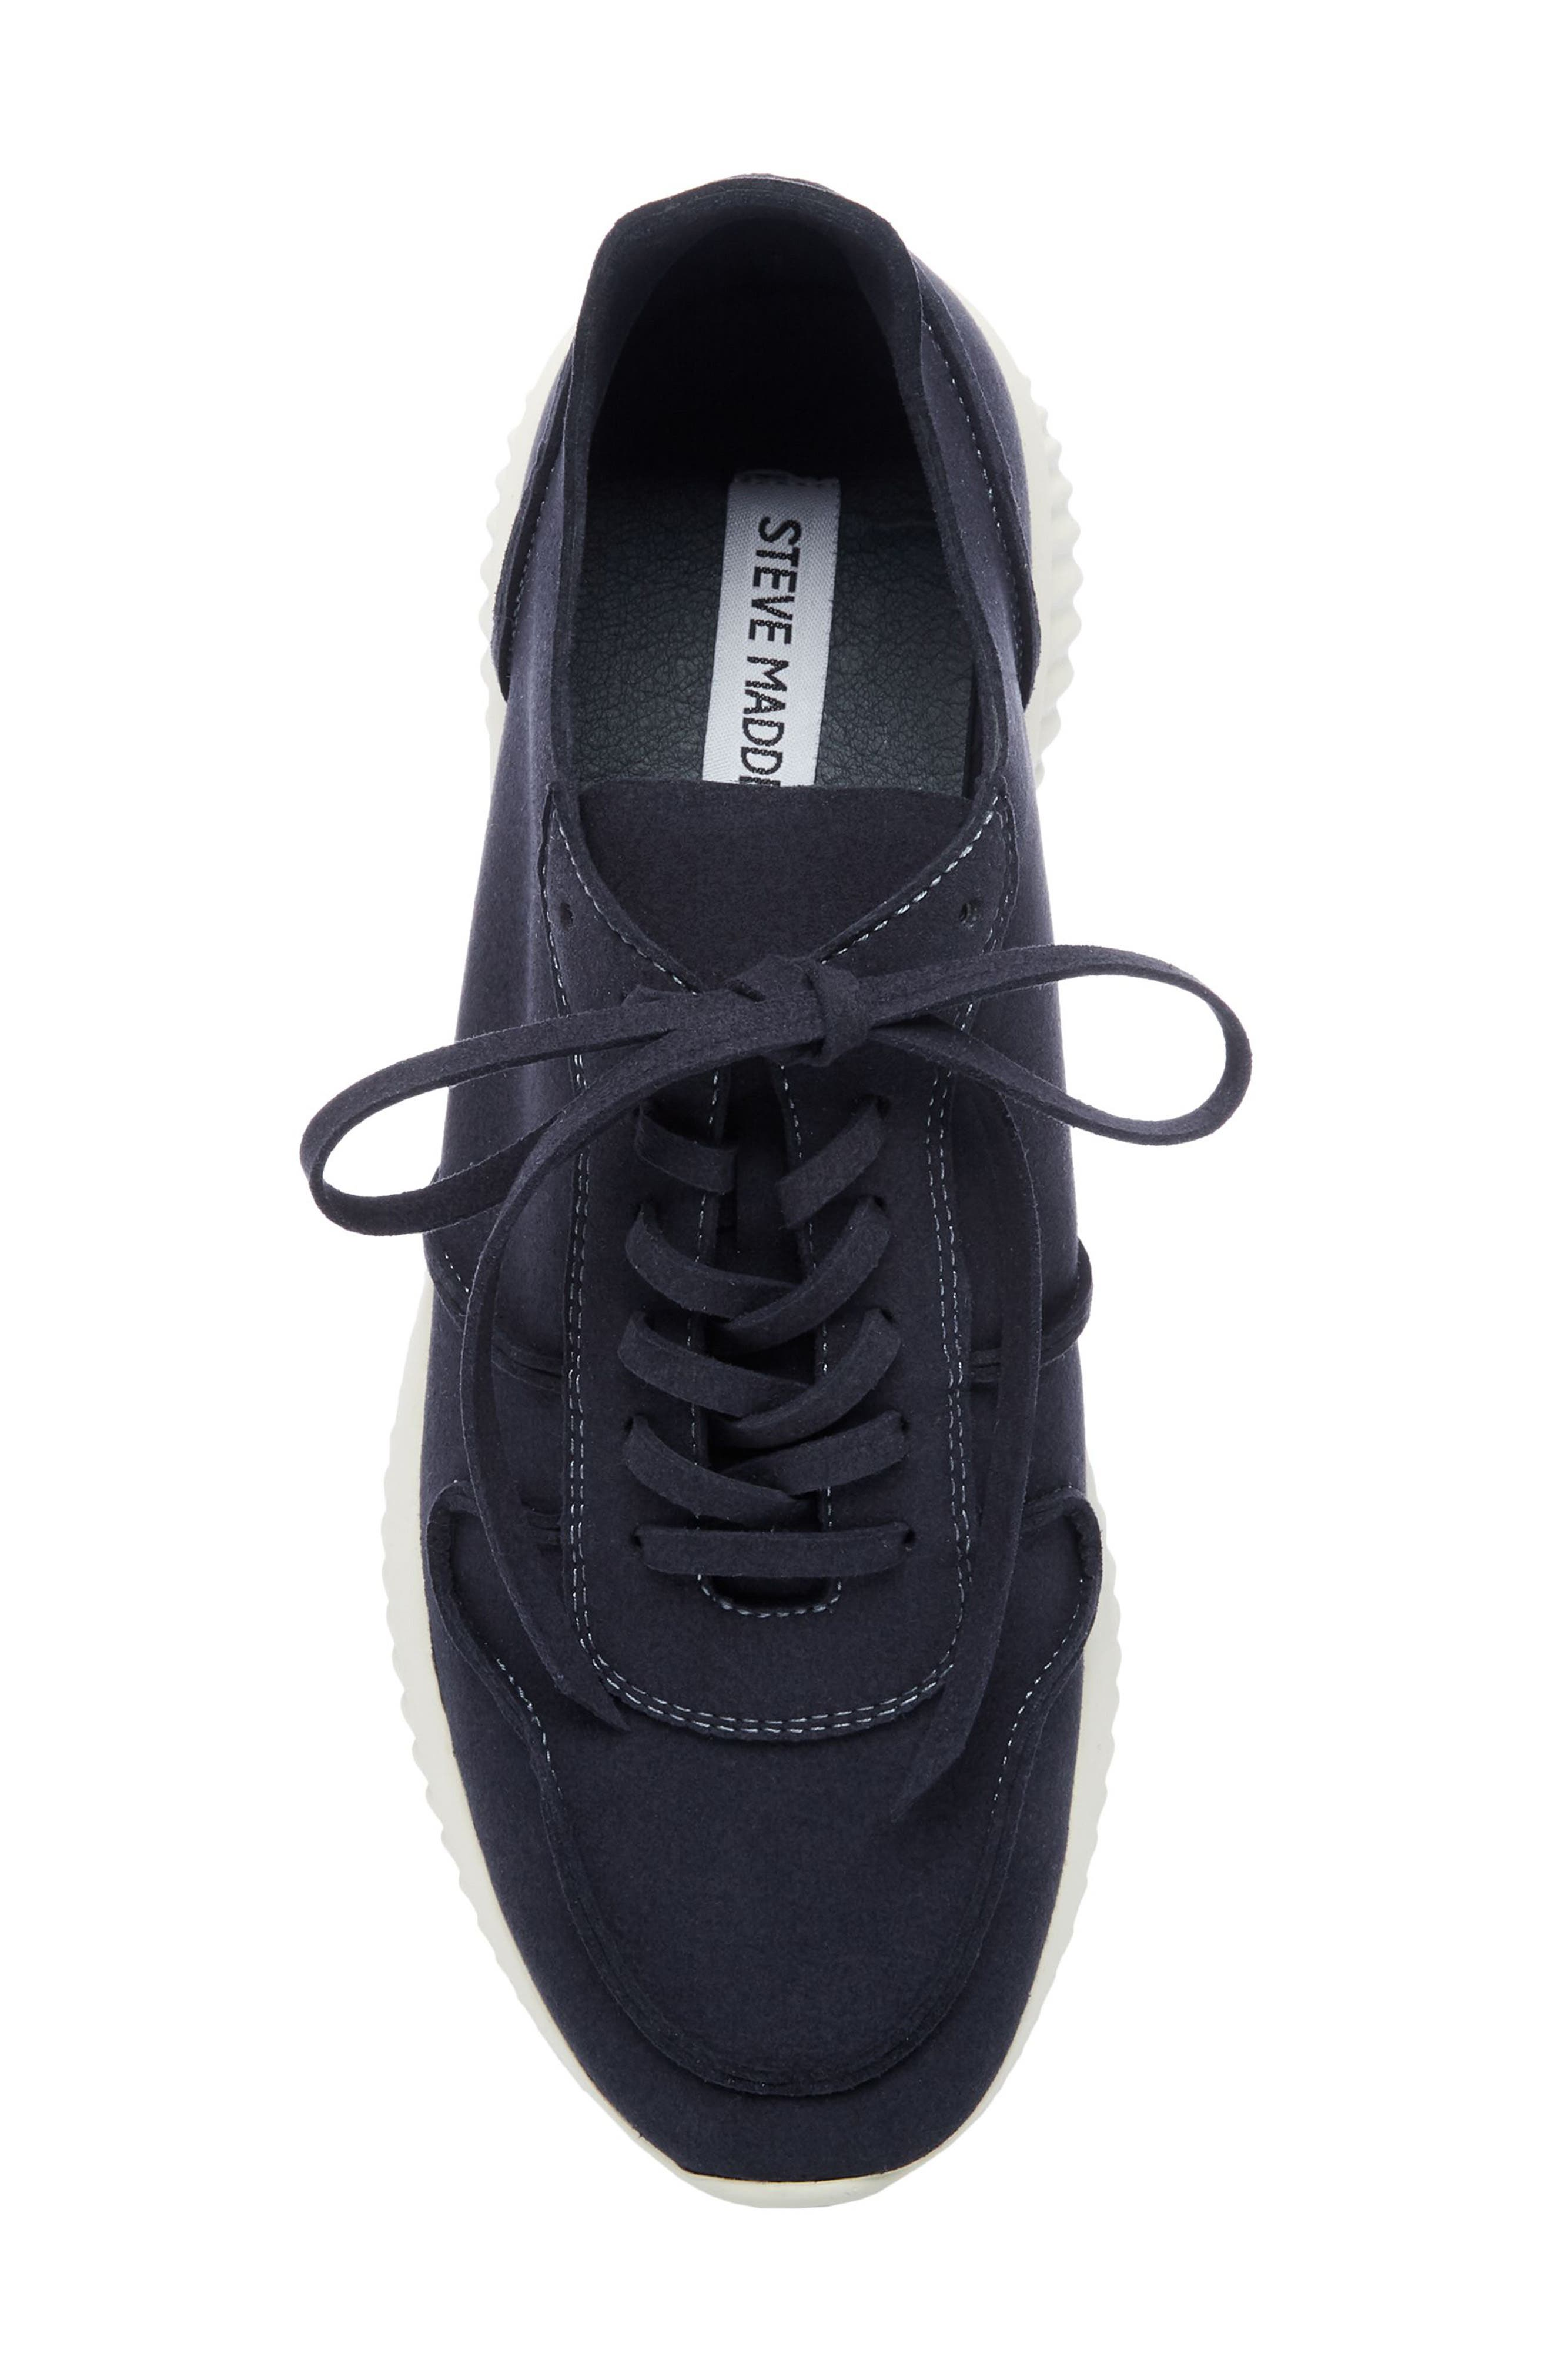 Rolf Low Top Sneaker,                             Alternate thumbnail 5, color,                             Navy Leather